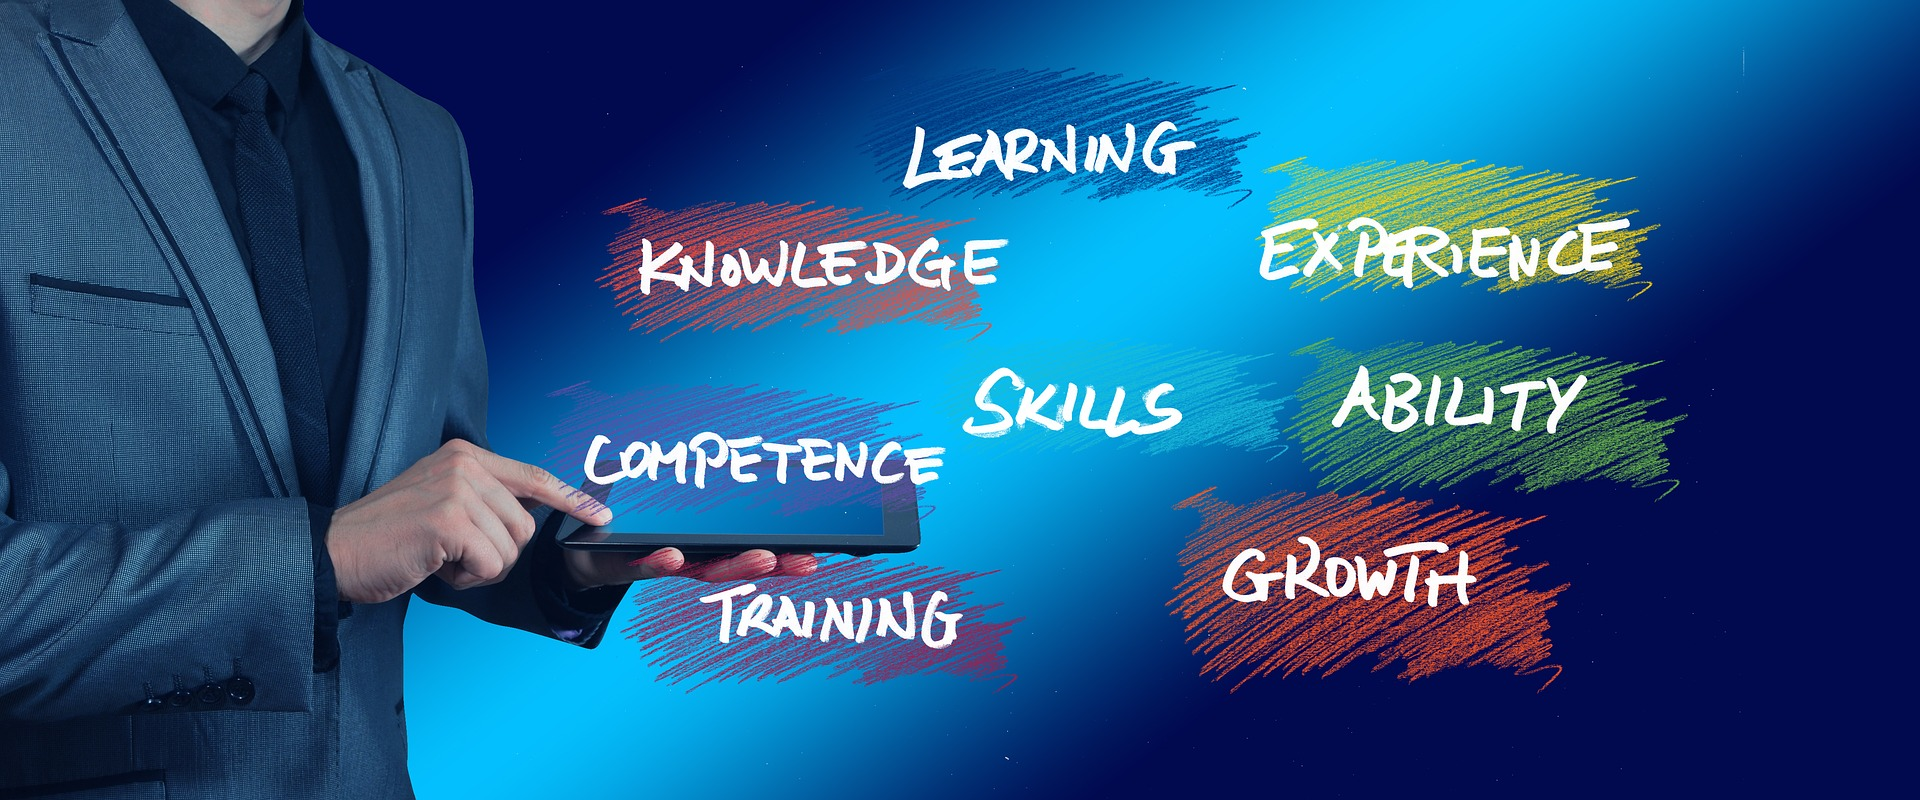 "Bild mit Schrift ""Learning, Knowledge, Experience, Skills, Ability, Competence, Growth, Training"""